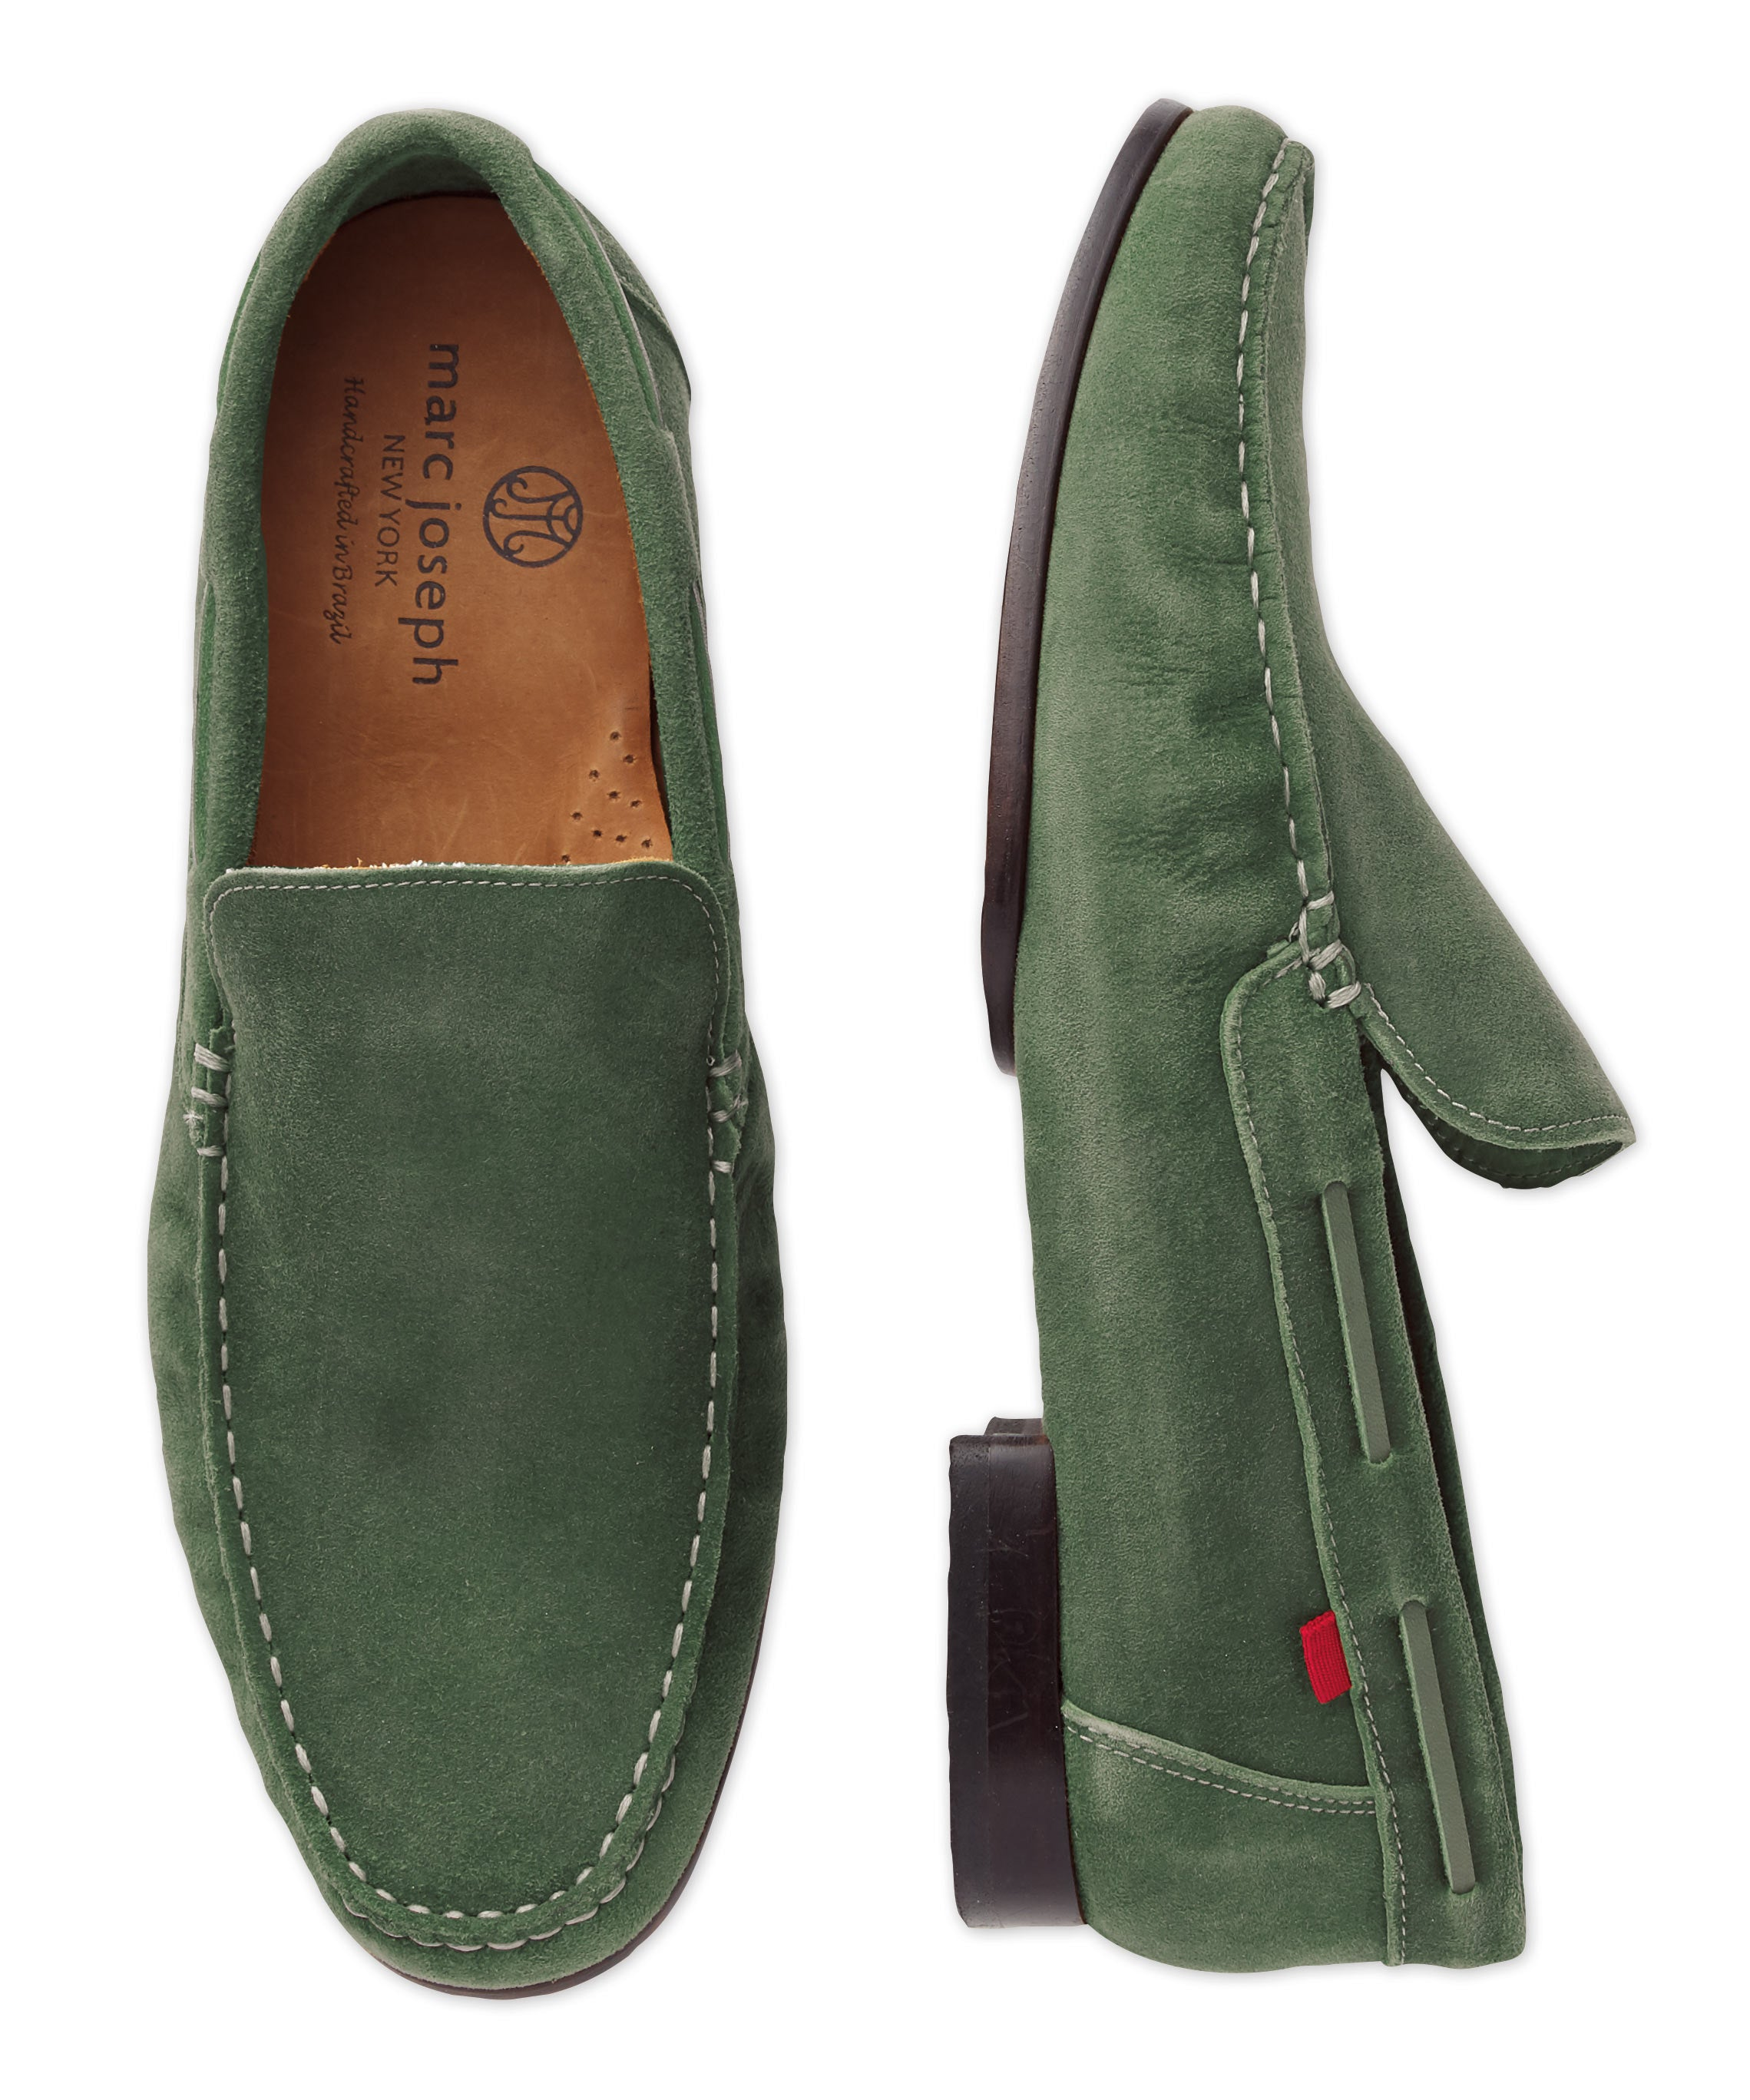 Marc Joseph Norden State Suede Slip-on Shoe